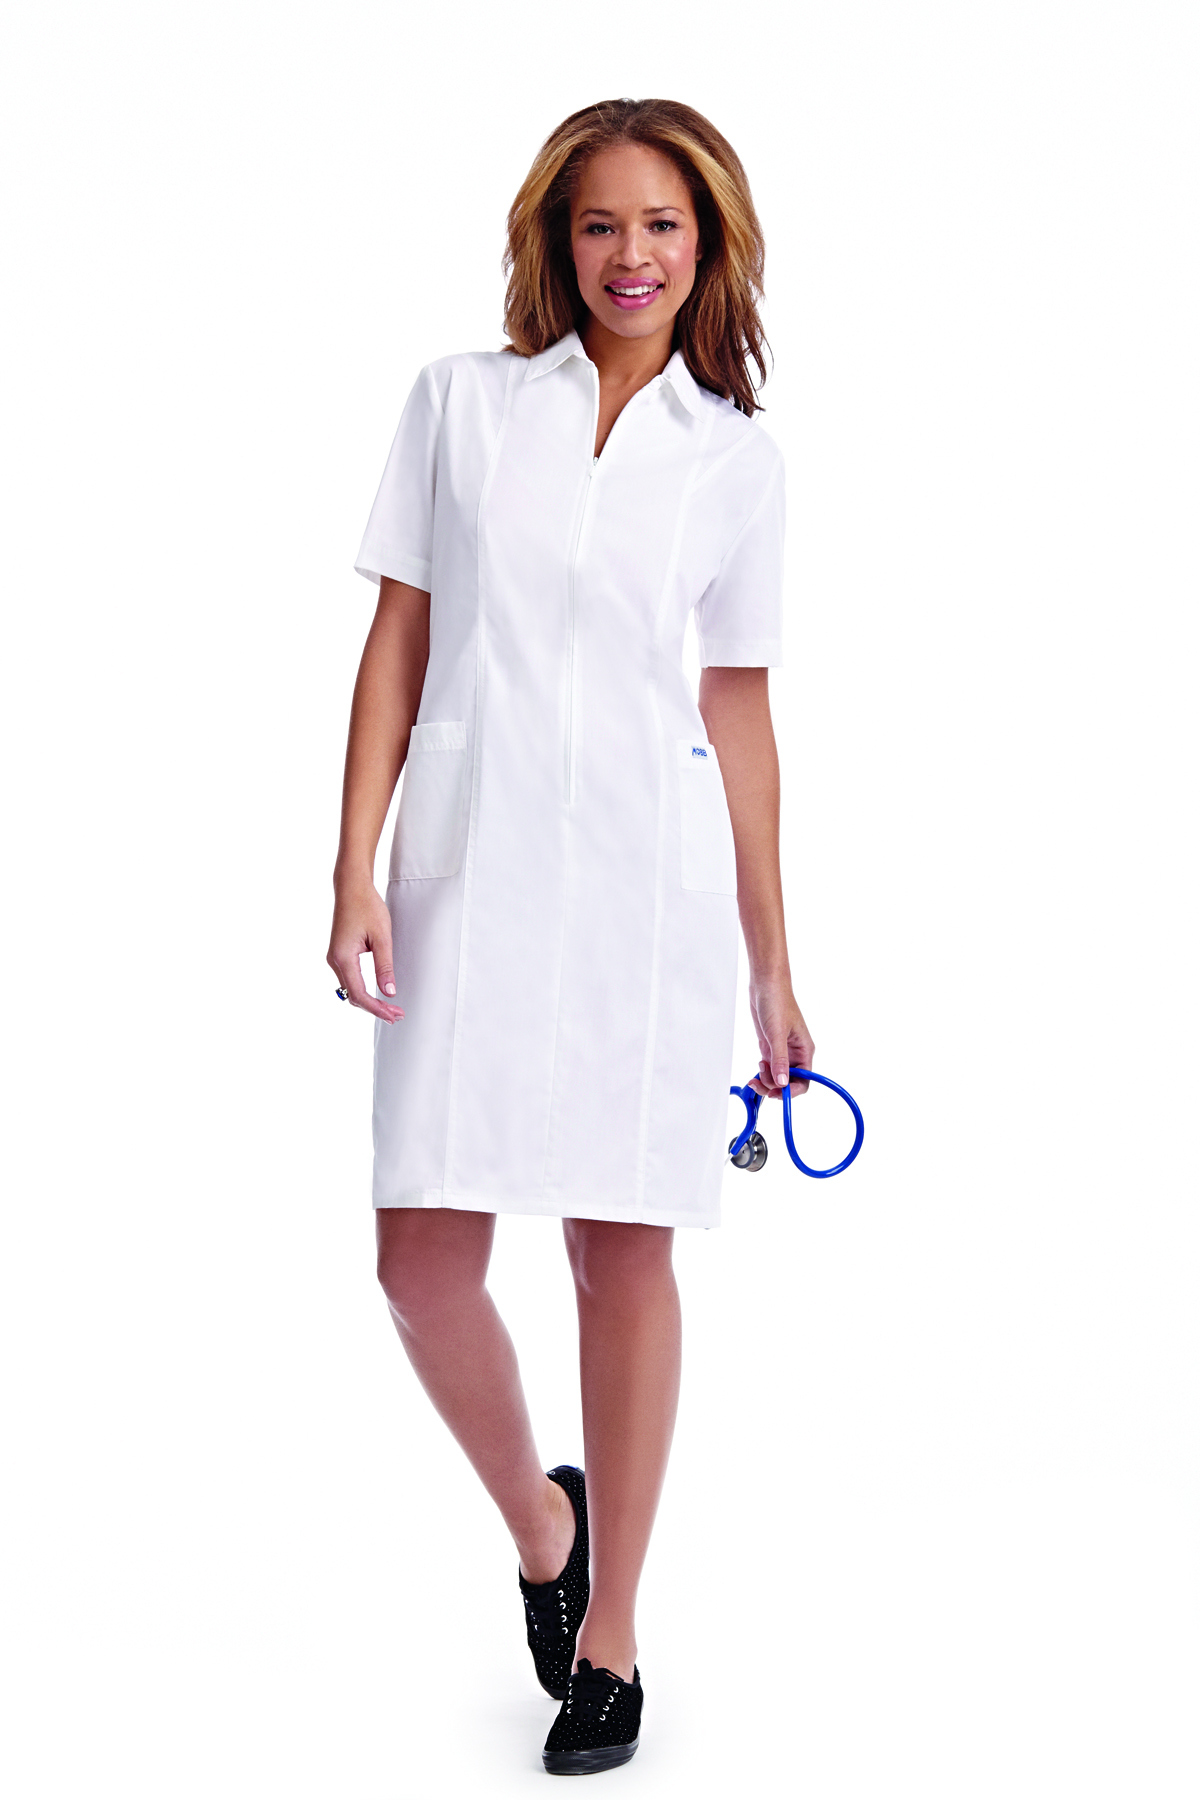 Dresses And Gowns Medical Uniforms Universal Work Wear